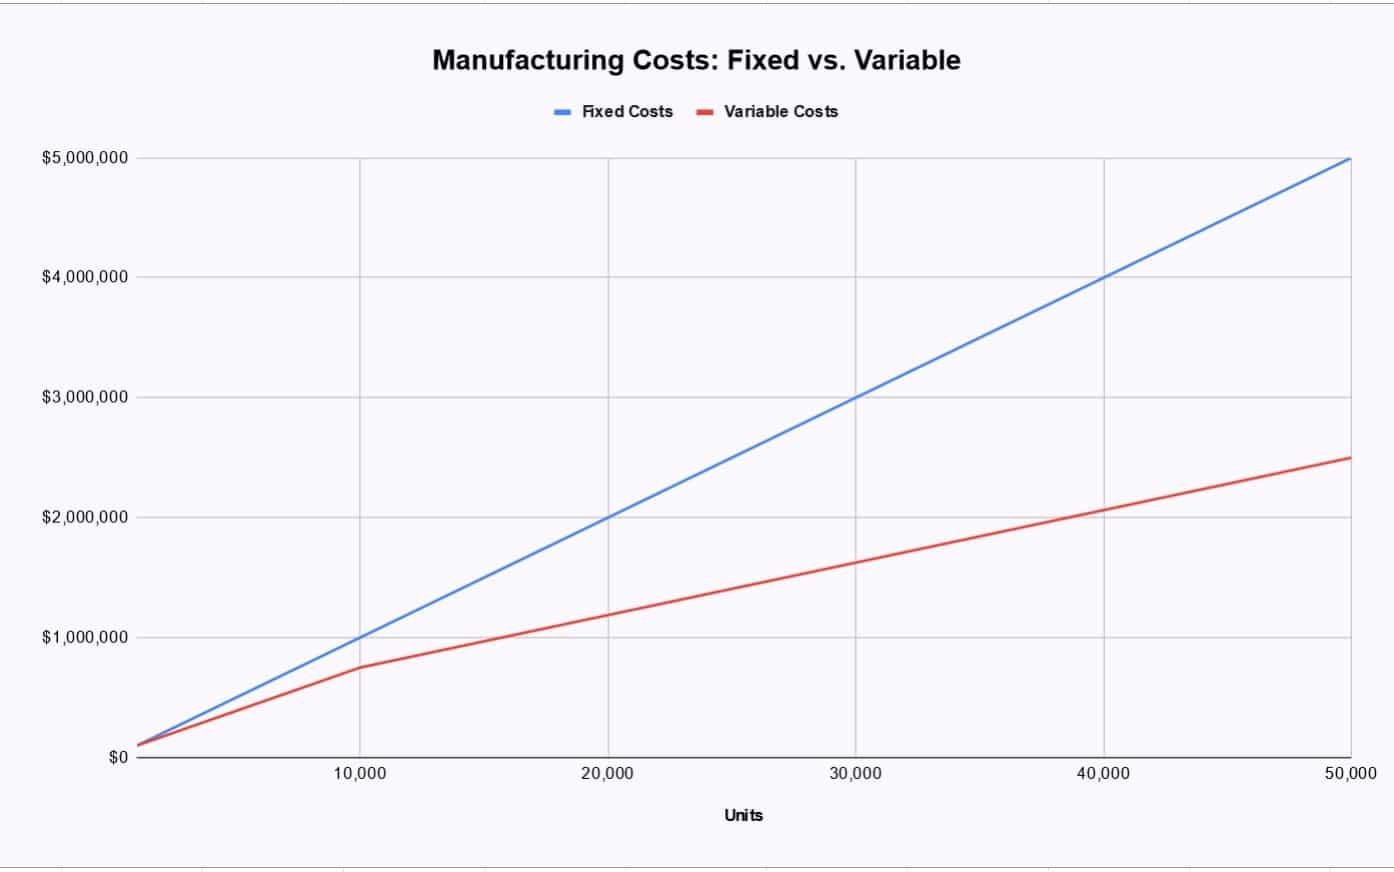 Fixed vs. Variable Costs of Manufacturing